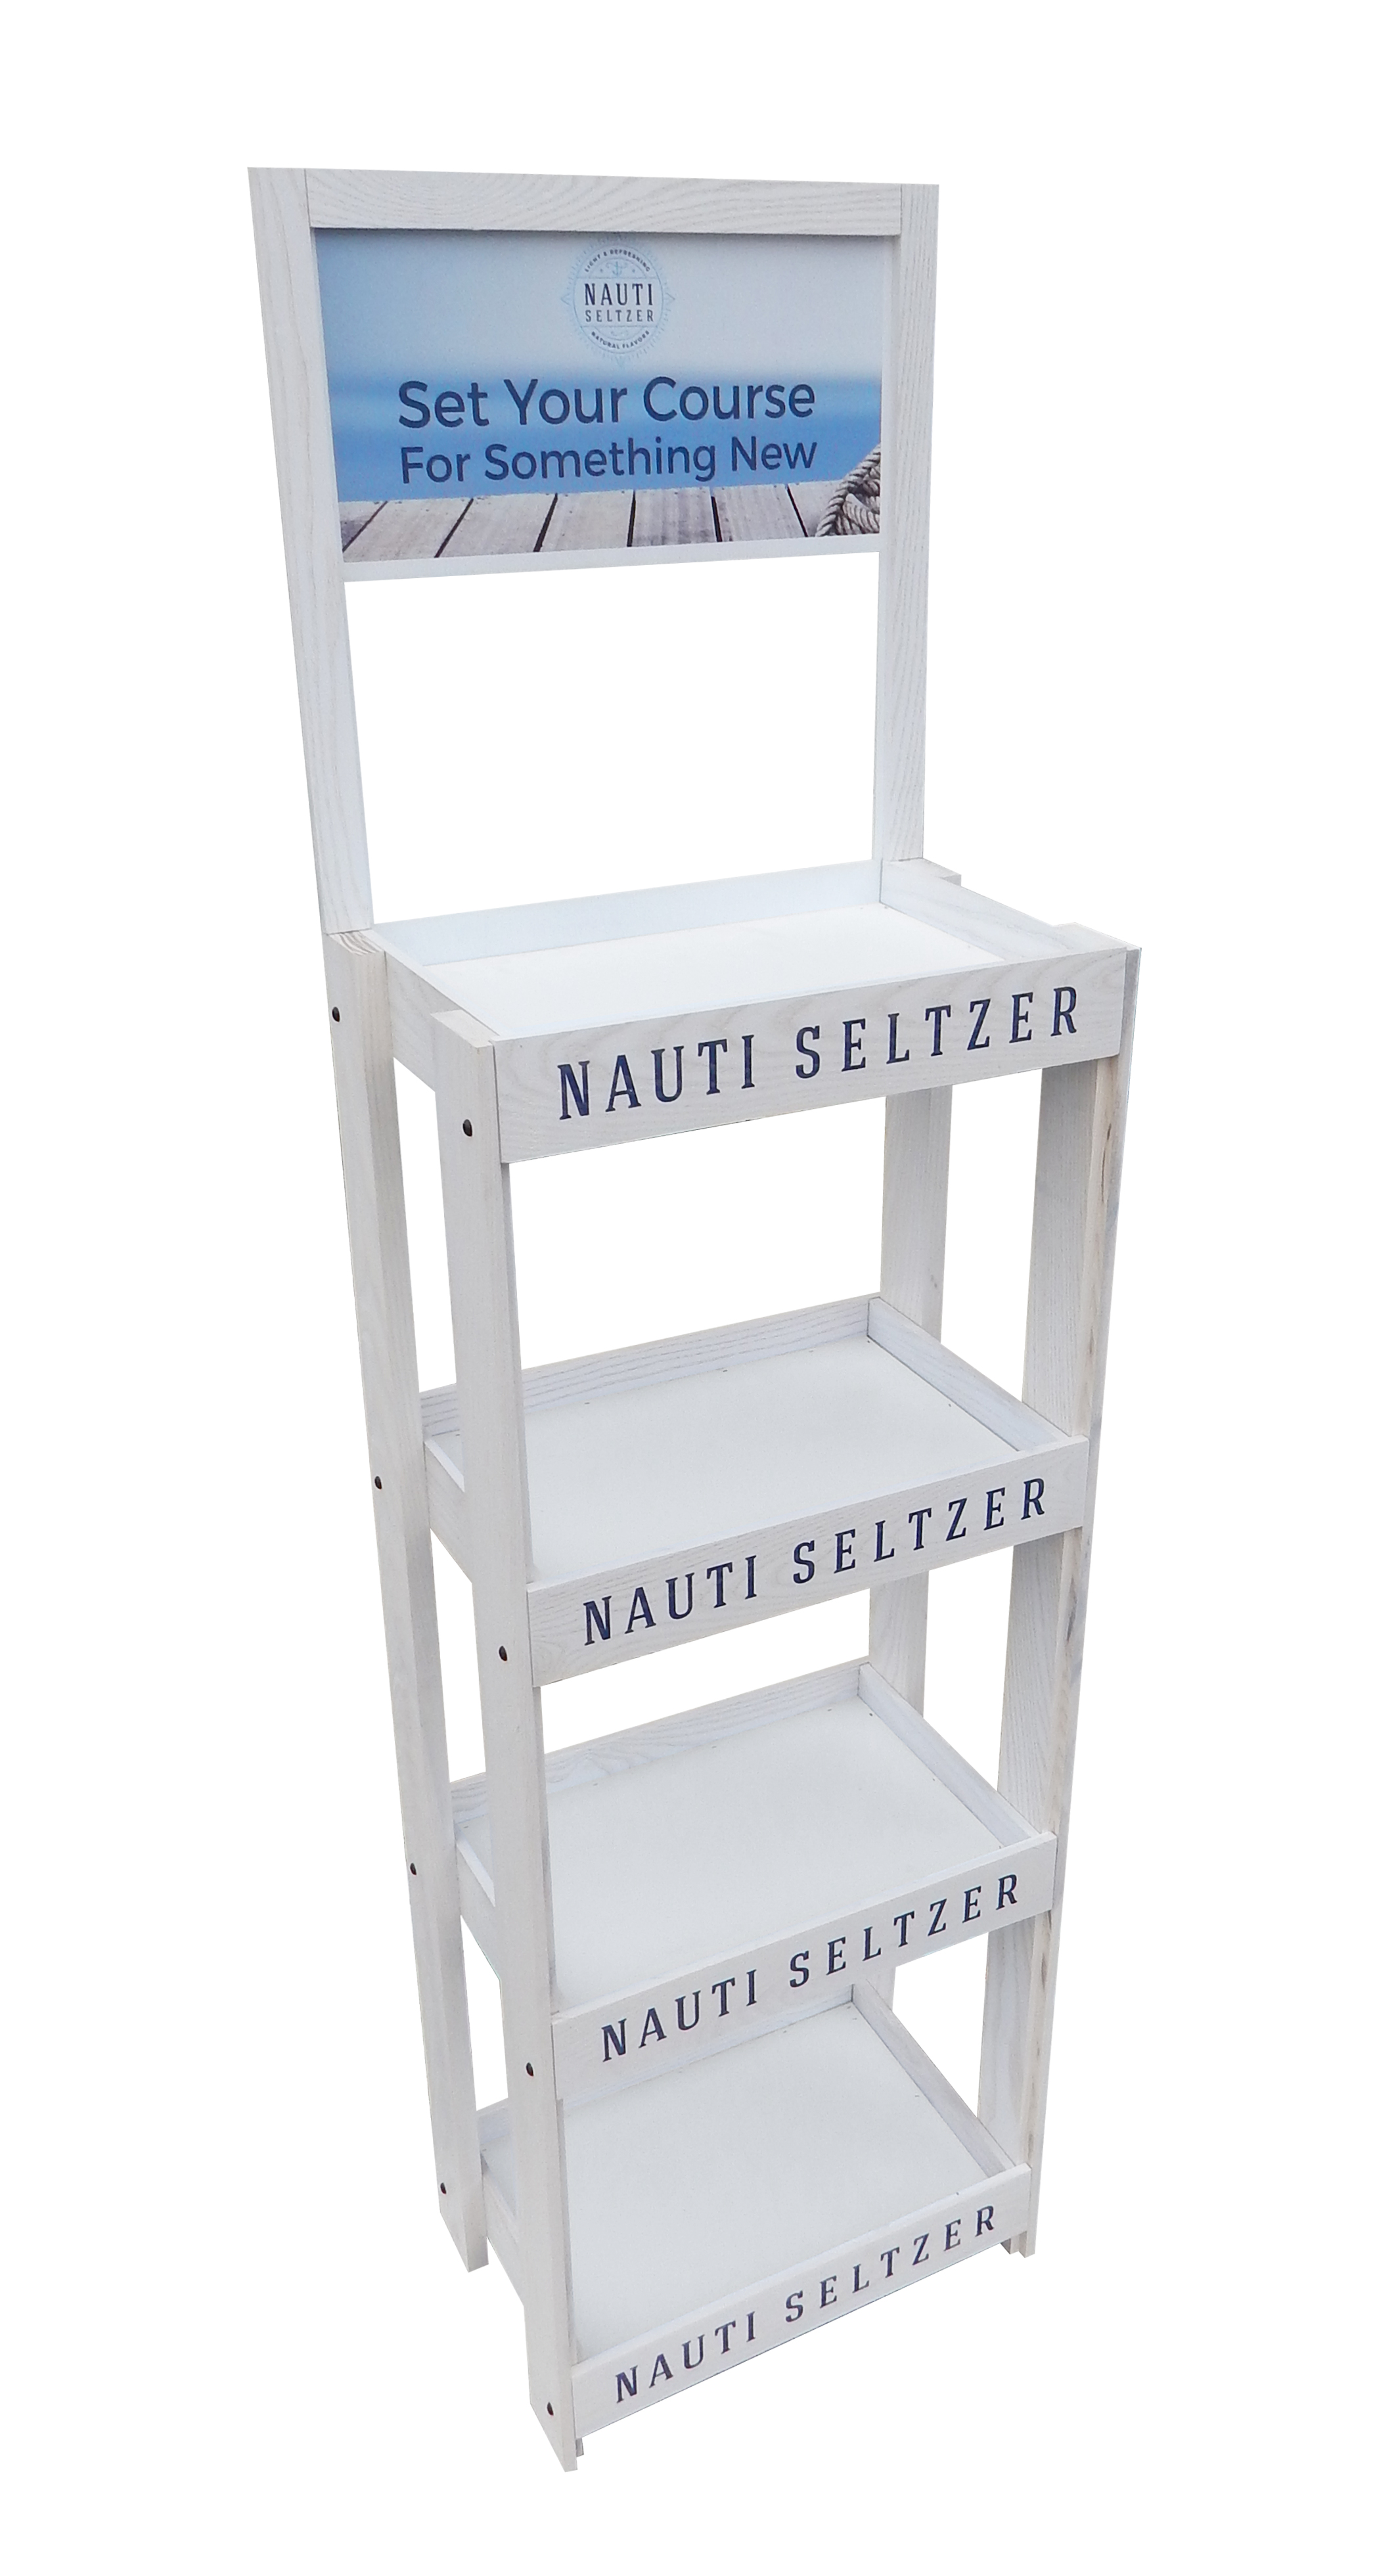 Nauti Seltzer Rack Display